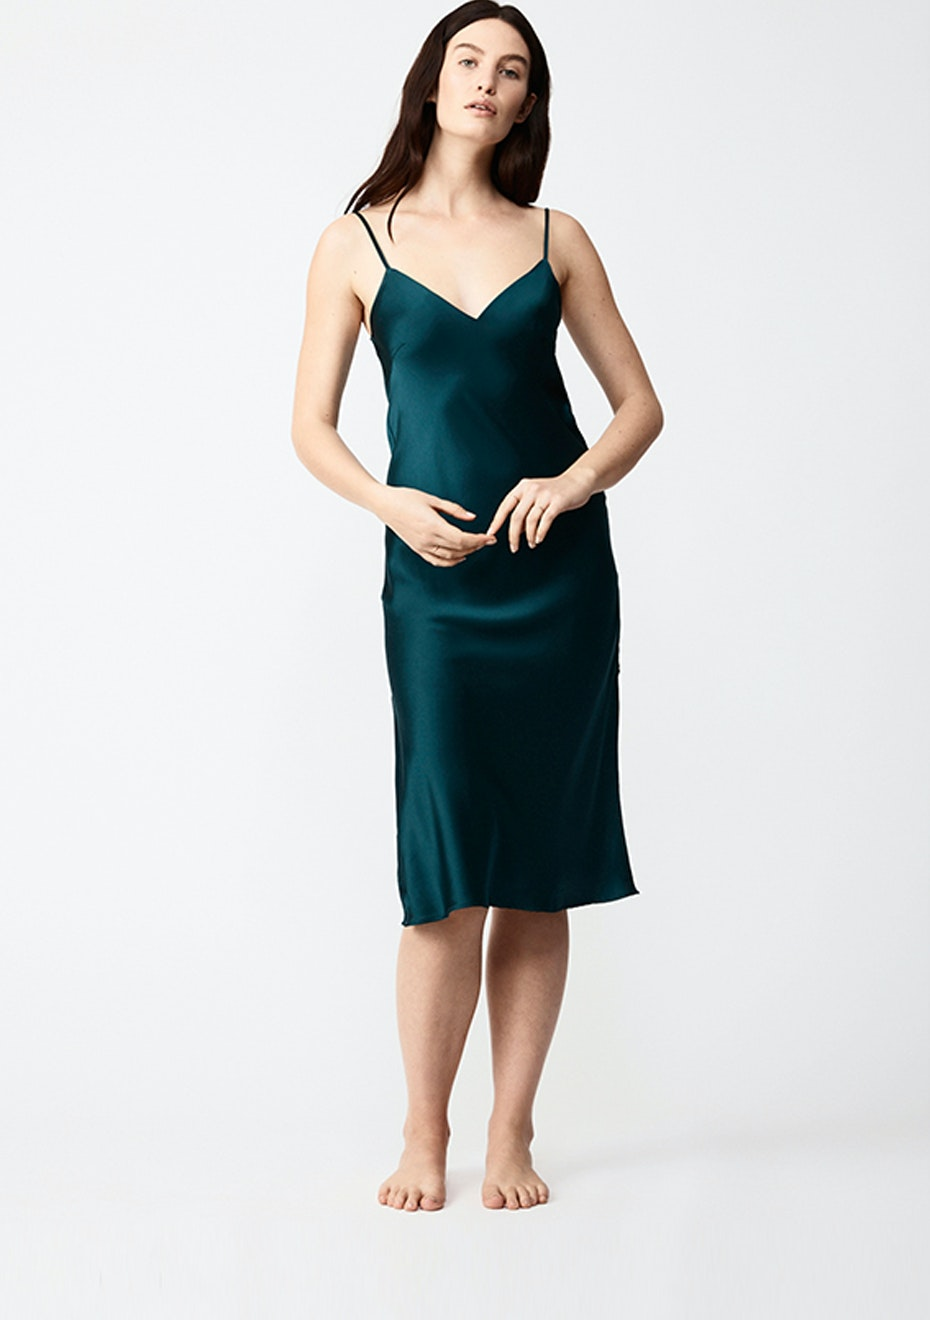 NATALIJA - Silk Slip Dress - Emerald